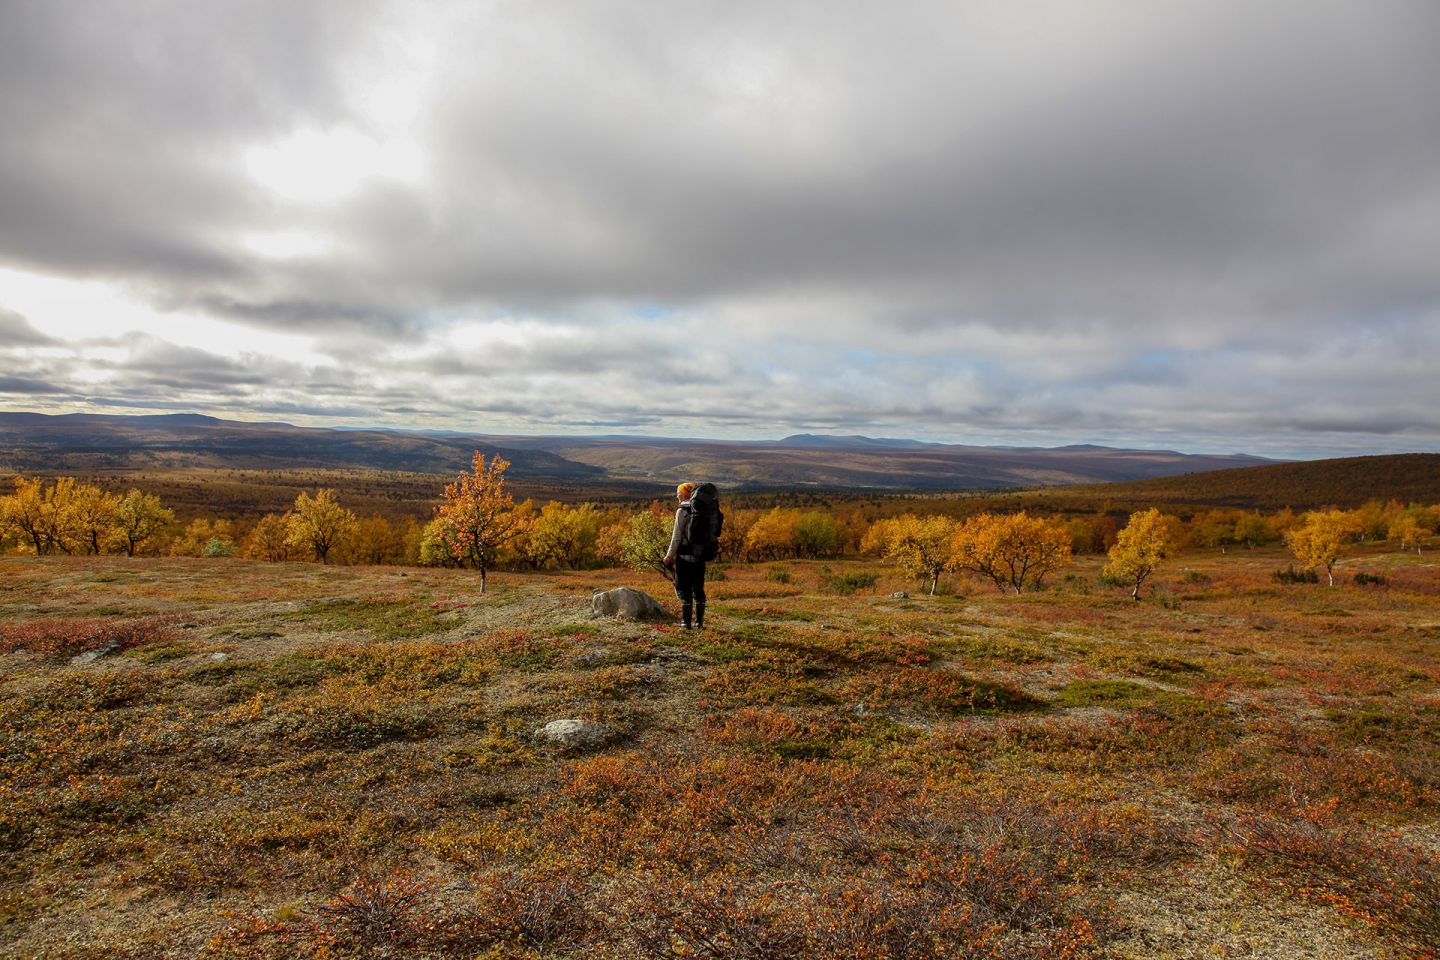 Hiking in tundra forest in Utsjoki, Finland